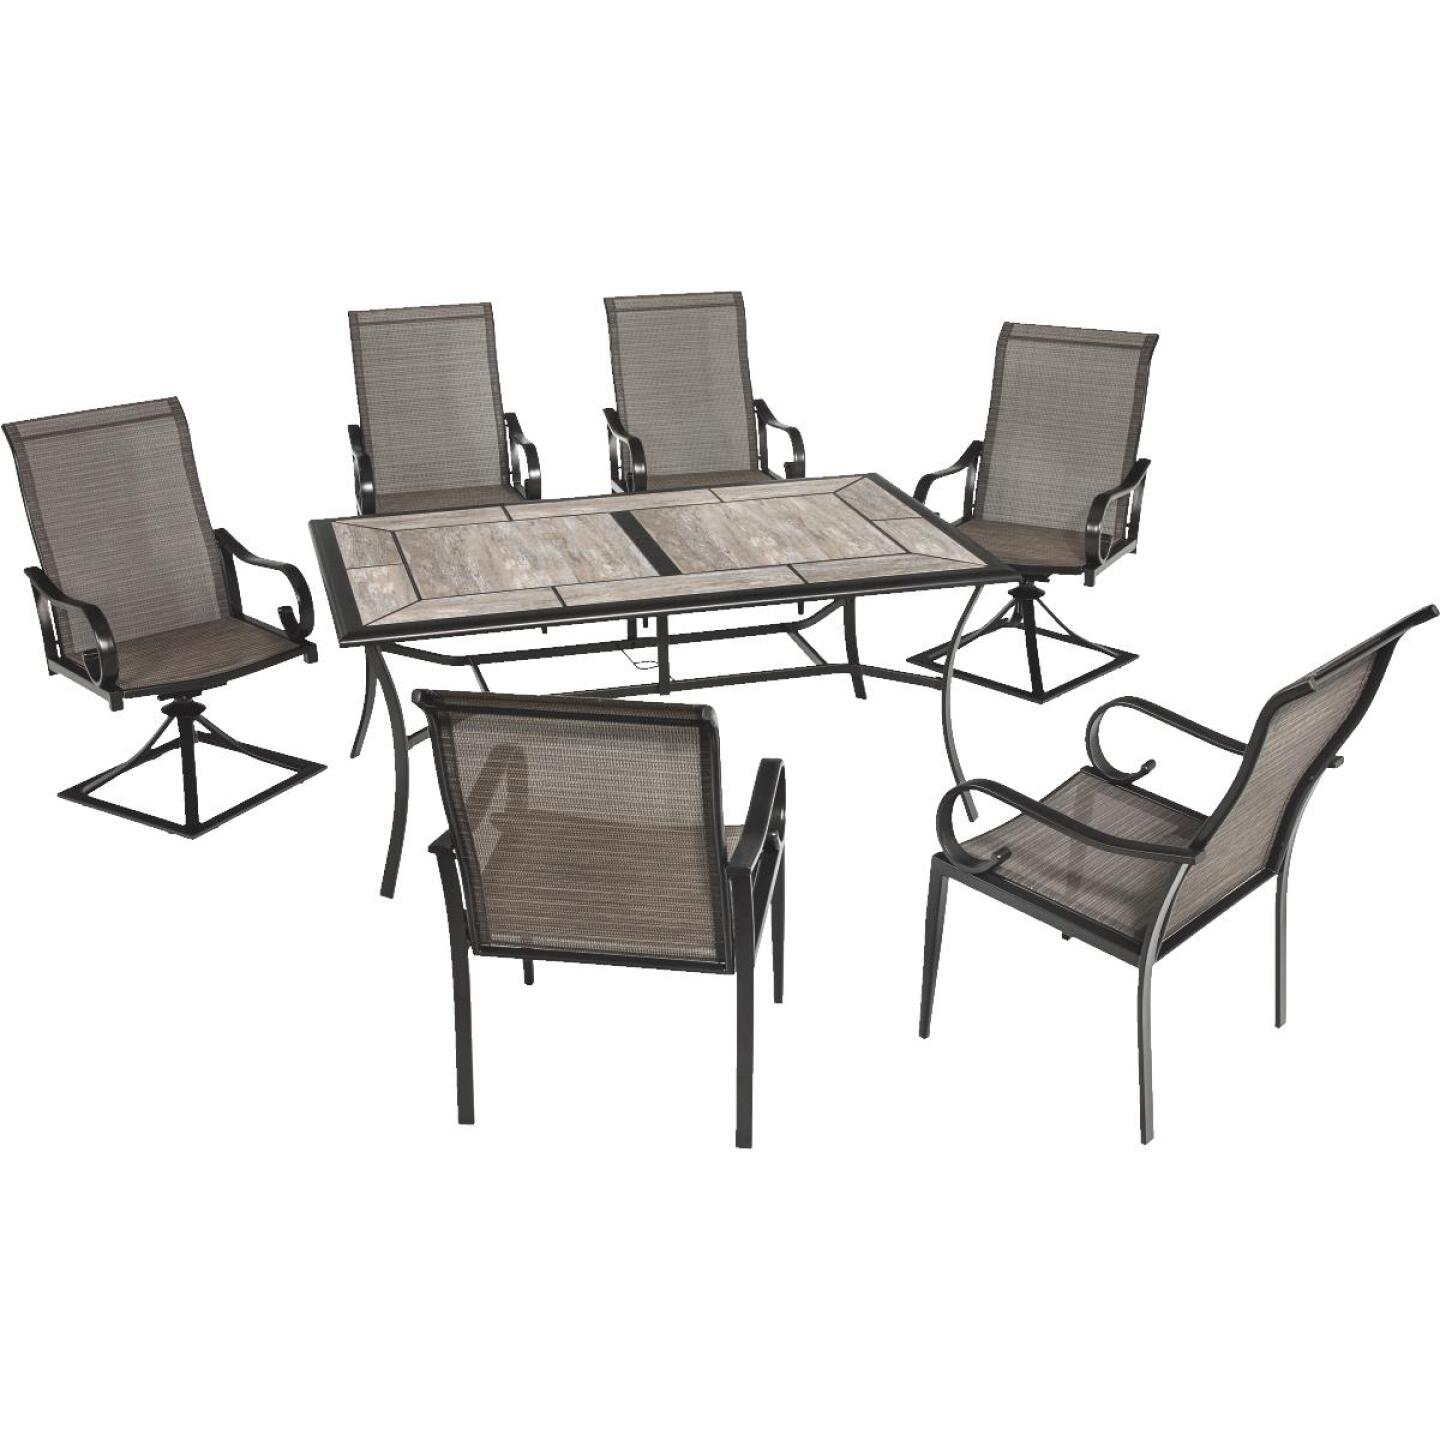 Outdoor Expressions Berkshire 7-Piece Dining Set Image 33